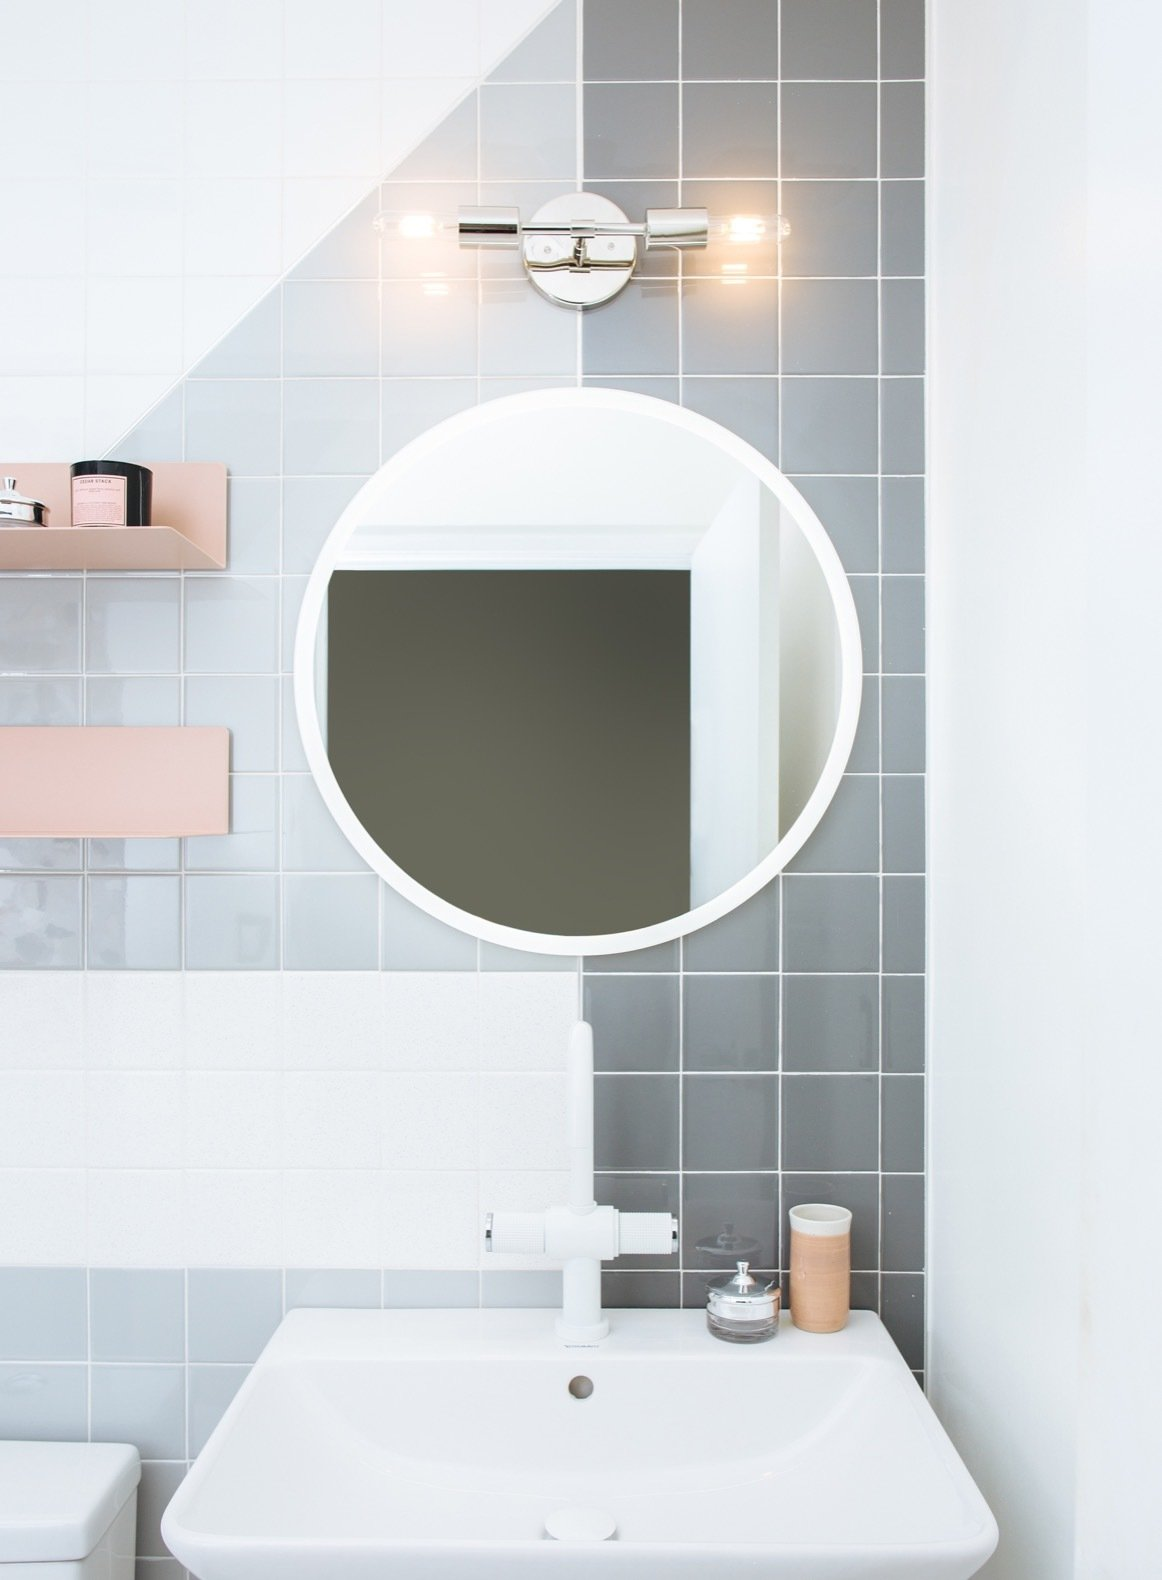 Bath, Two Piece, Porcelain Tile, Wall Mount, Wall, and Ceramic Tile The sink is from Duravit.  Best Bath Two Piece Wall Mount Photos from Budget Breakdown: A Humdrum Bathroom Gets a Retro-Chic Facelift For $17K